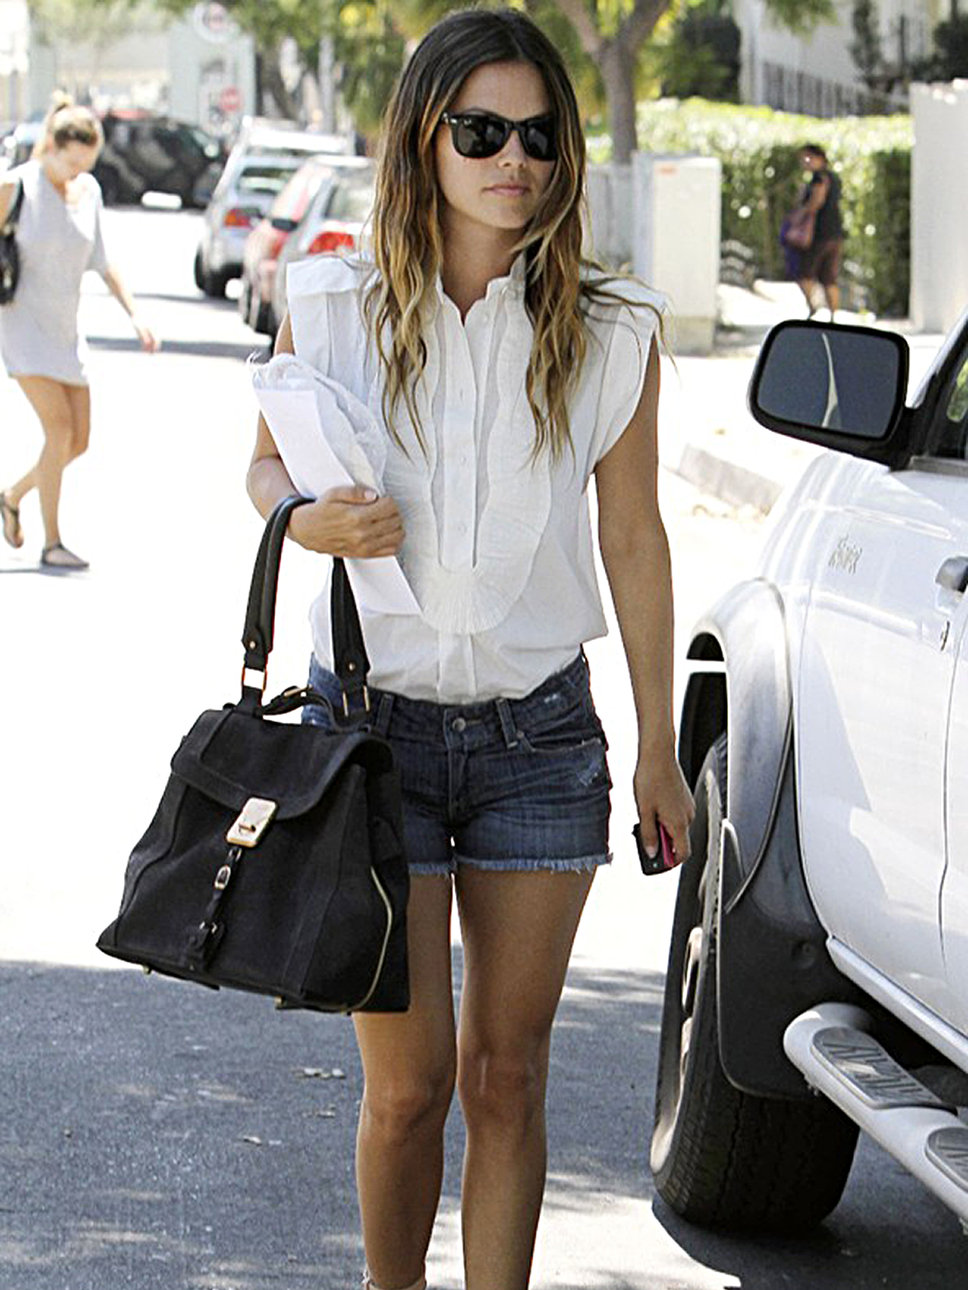 Ray ban sunnies short shorts rachel bilson casual look